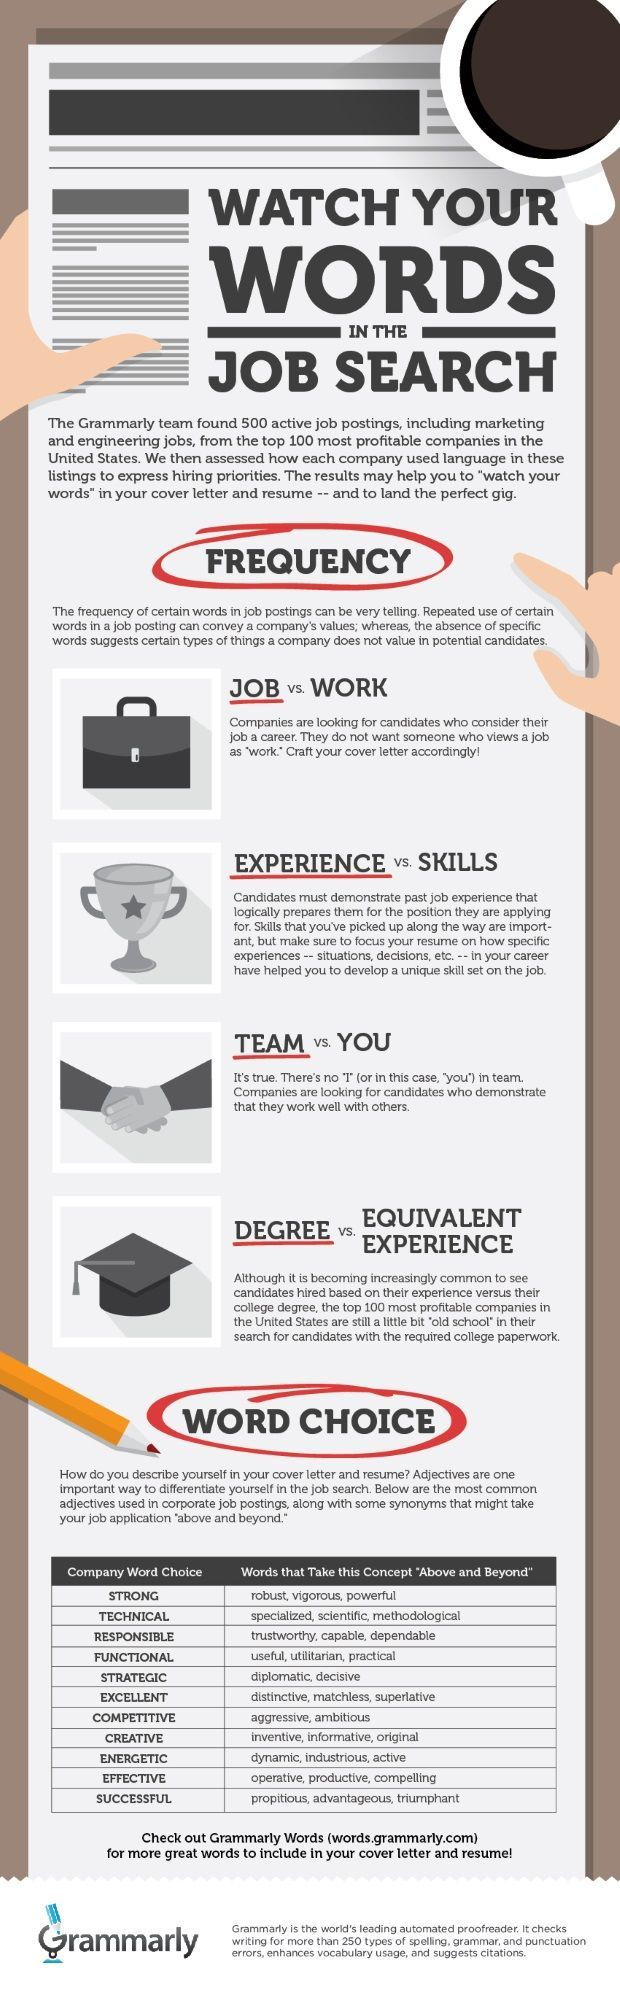 How To Do Cover Letter For Resume 25 Best Great Cover Letters Writing Images On Pinterest  Resume .